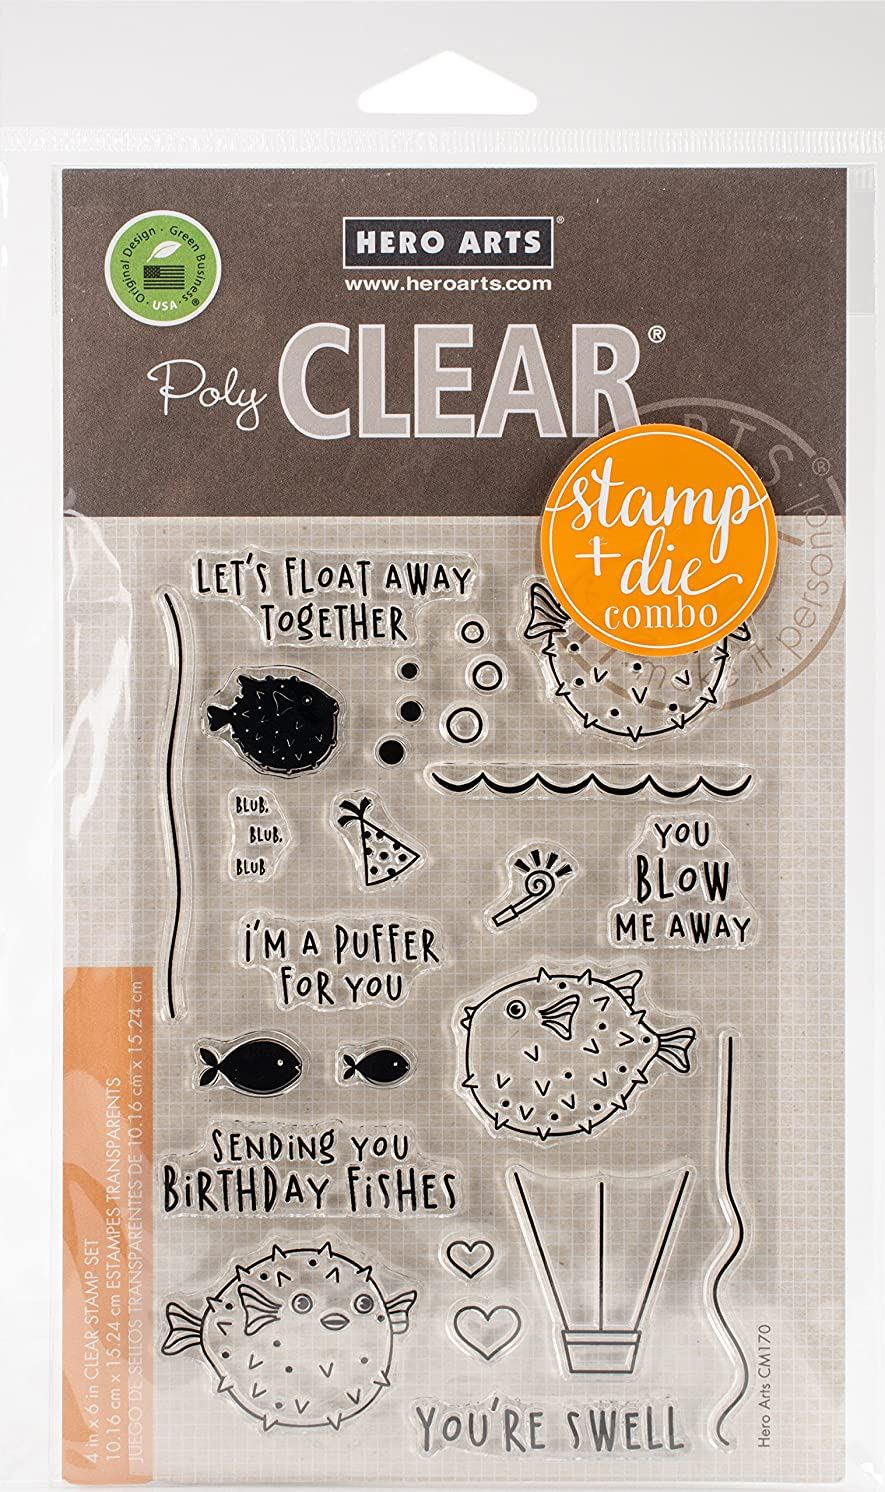 Hero Arts I'm A I'm A Puffer for You Clear Stamp & Die Combo